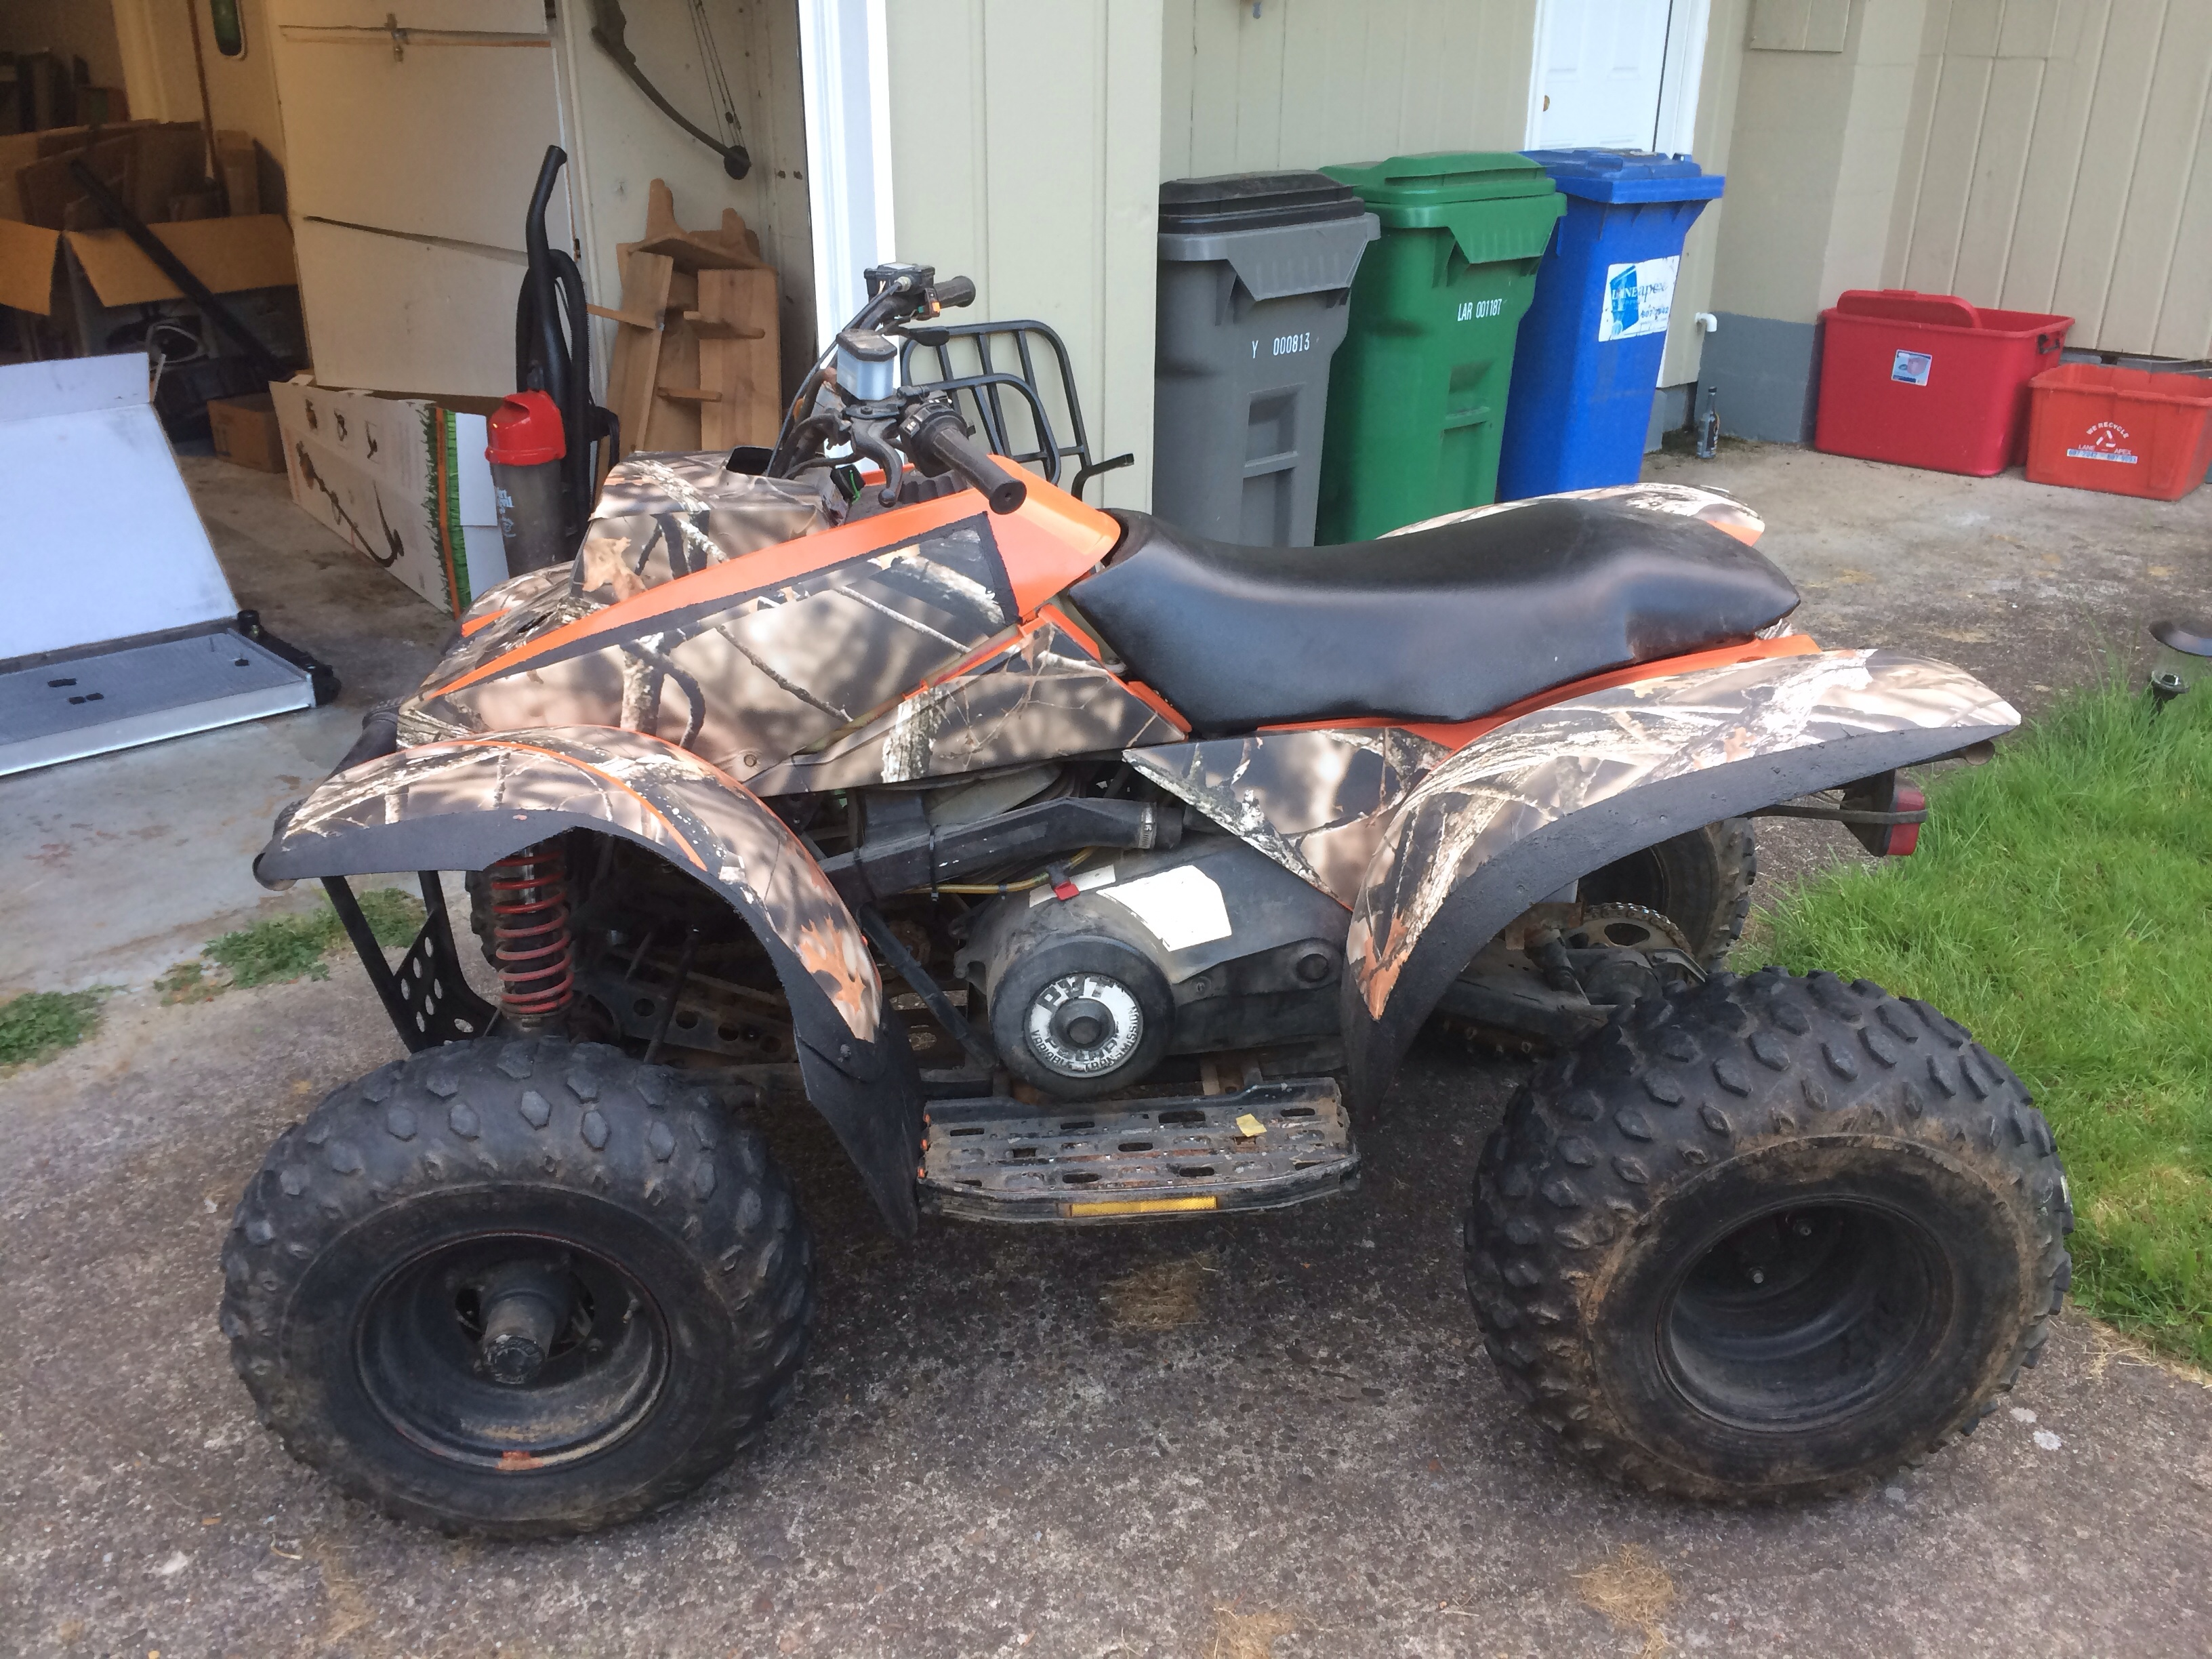 How to find the year of a polaris atv